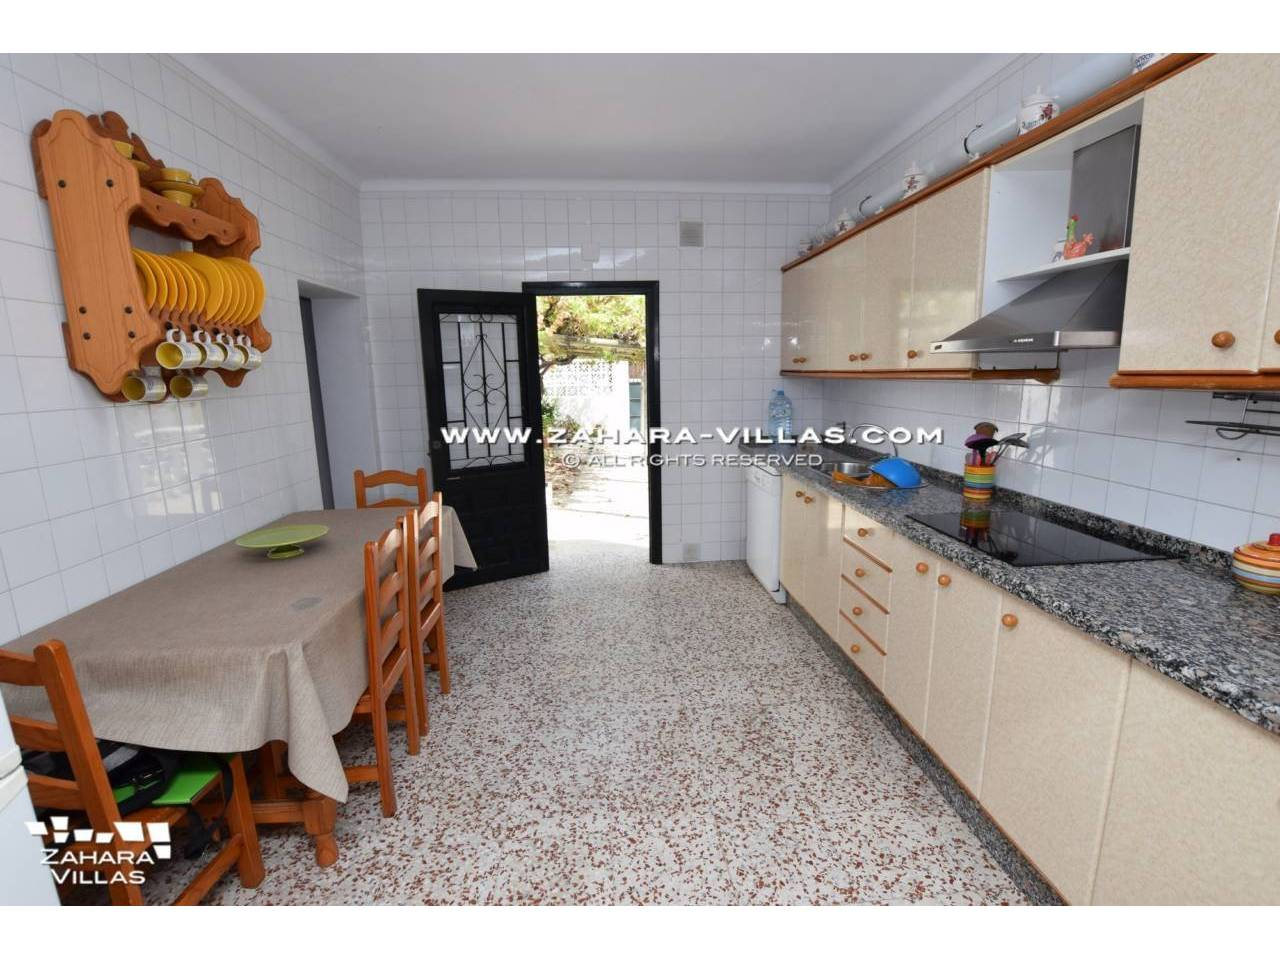 Imagen 8 de House in Avda. Del Pradillo for sale in the town of Zahara de los Atunes